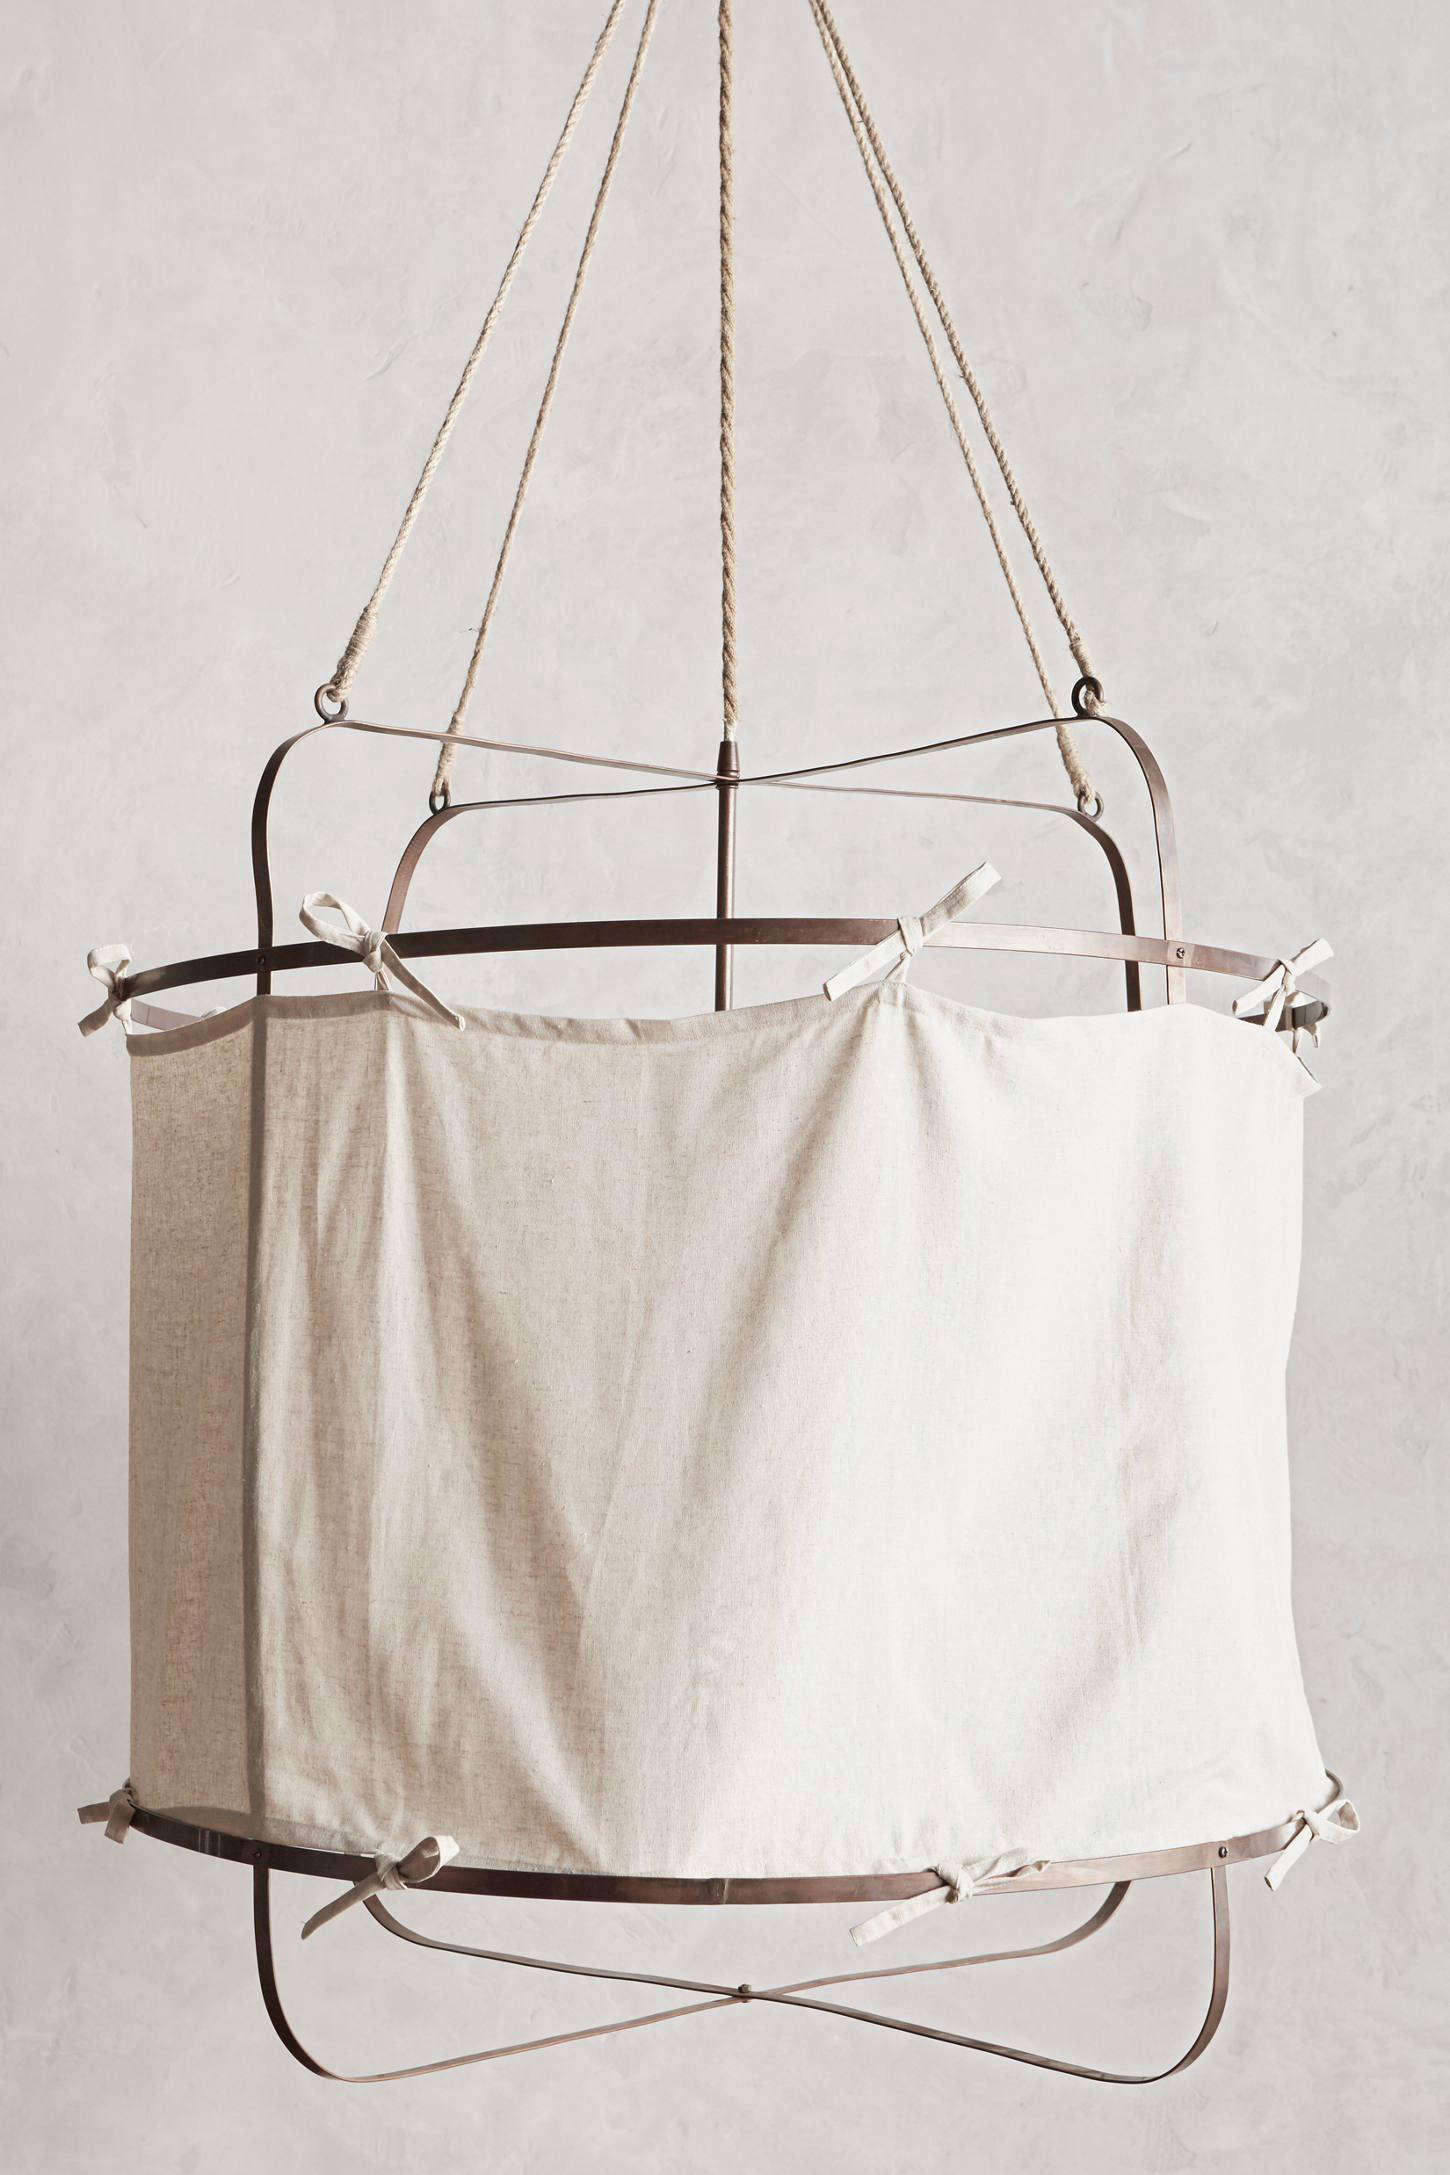 2cotton-hoop-light-fixture-anthropologie